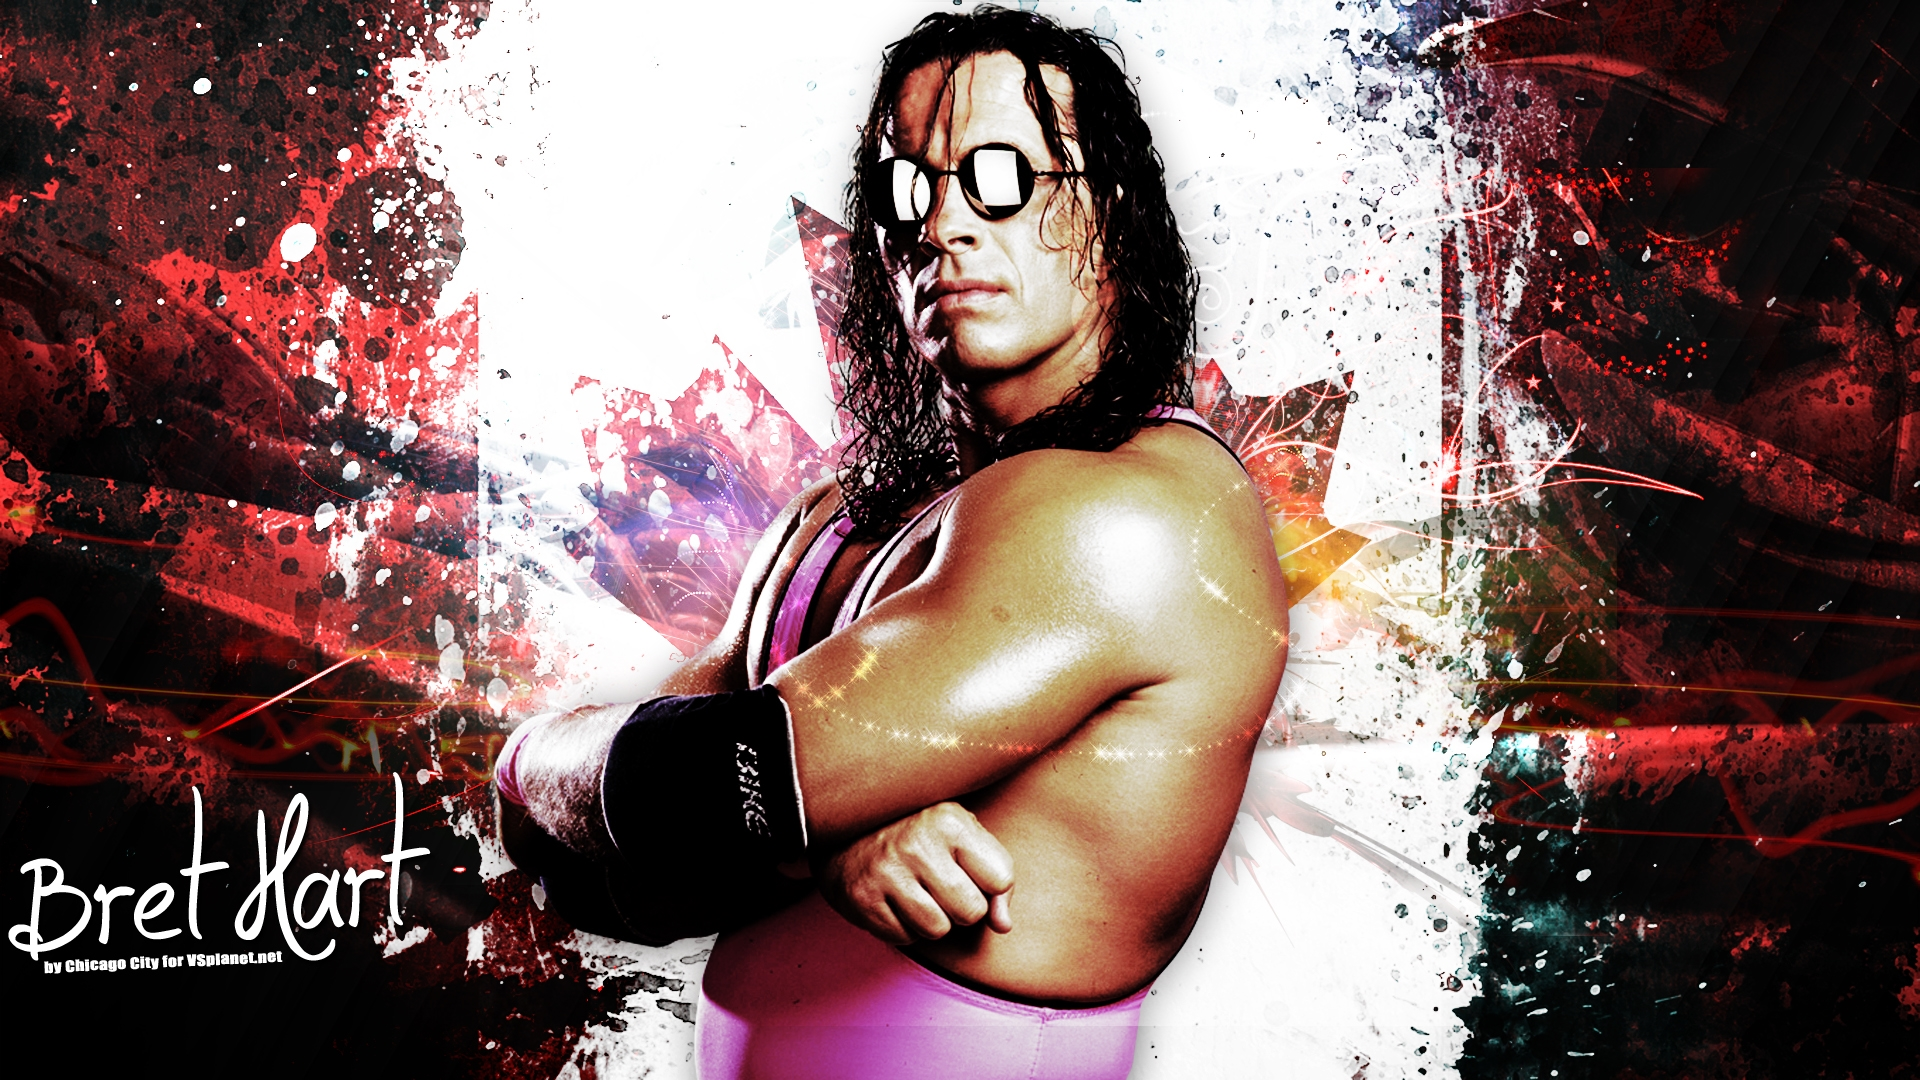 bret hart hit man hd wallpaer free